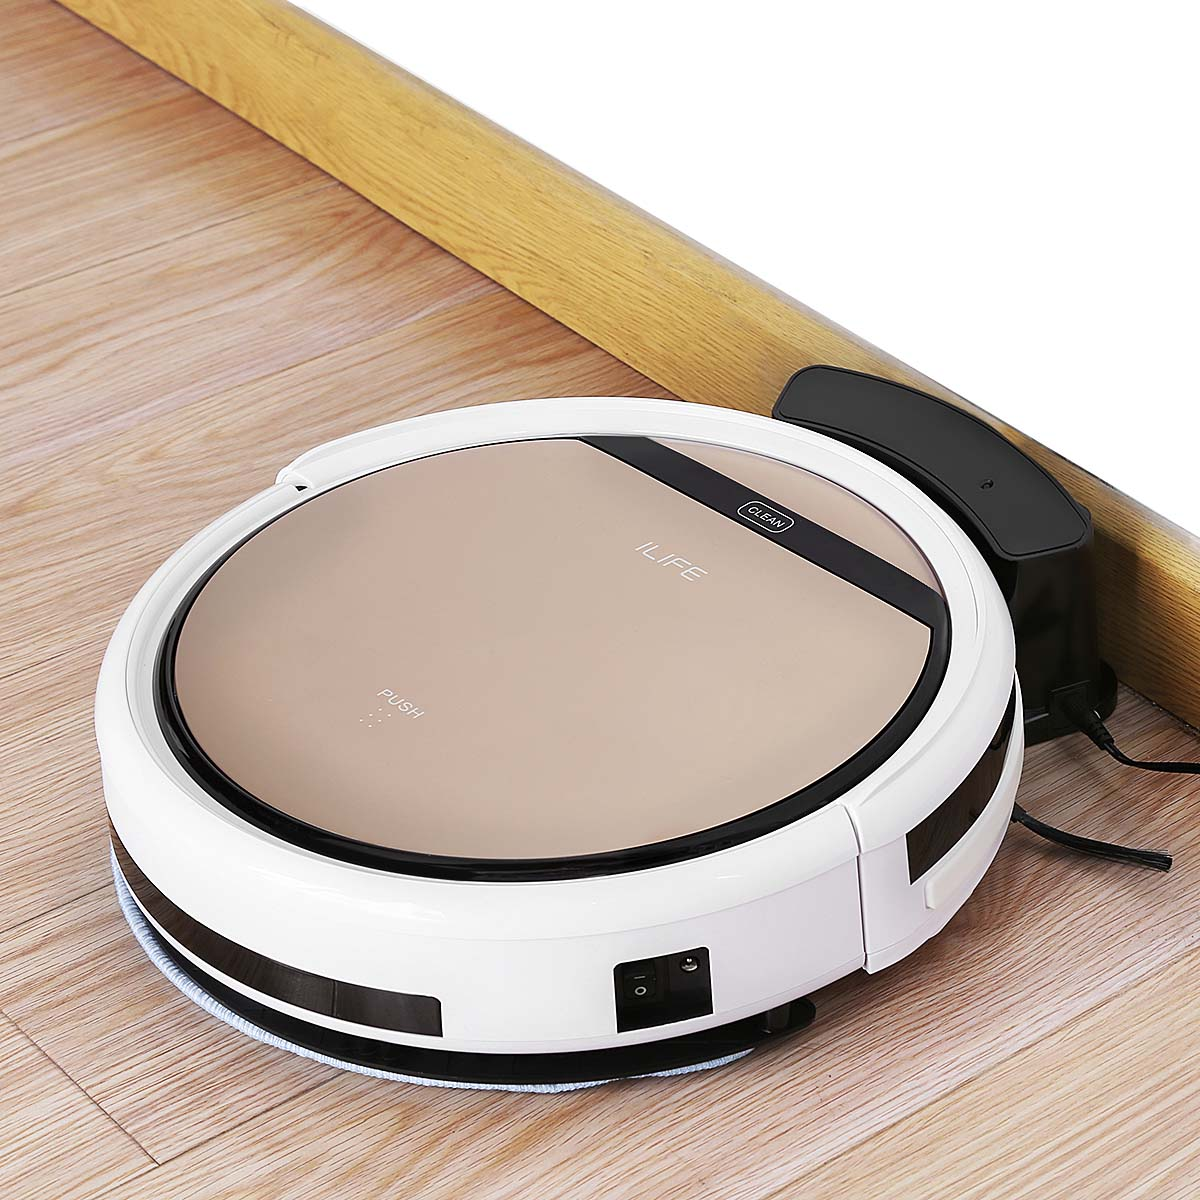 V5S Pro Smart Cleaning Robot Dry Wet Mop Floor Cleaner Auto